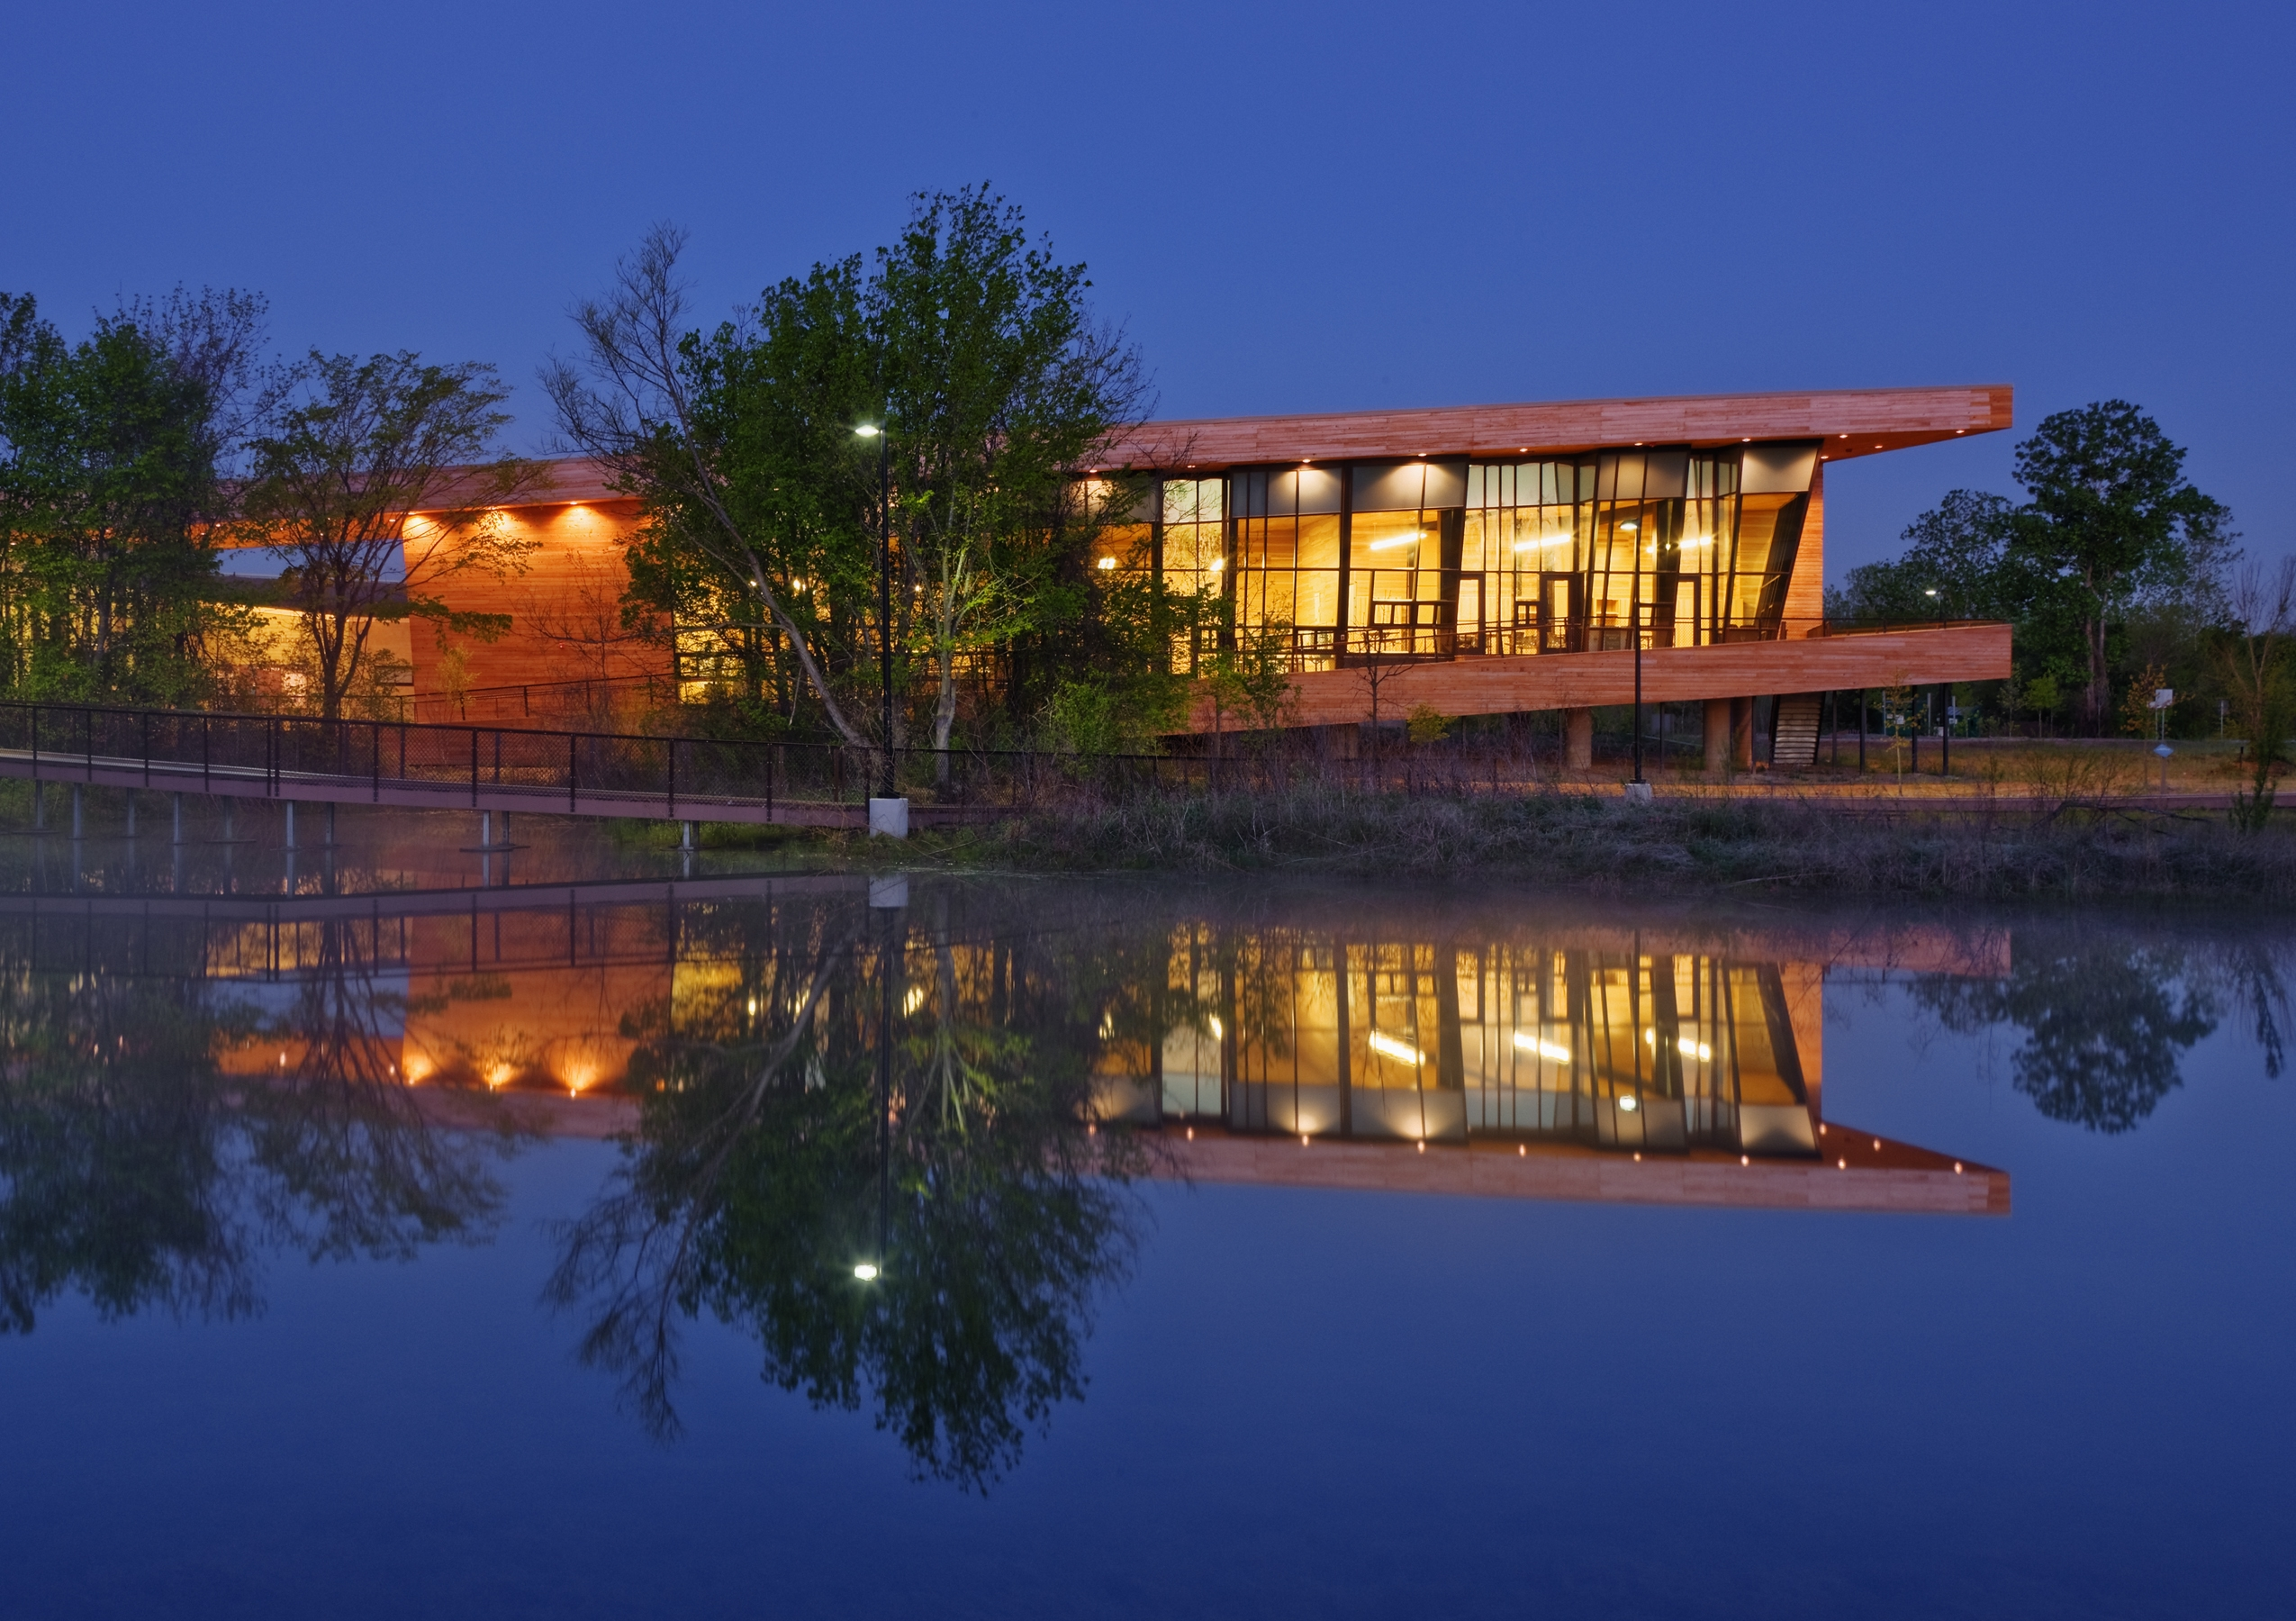 Texas, Dallas, Trinity Audubon Nature Center